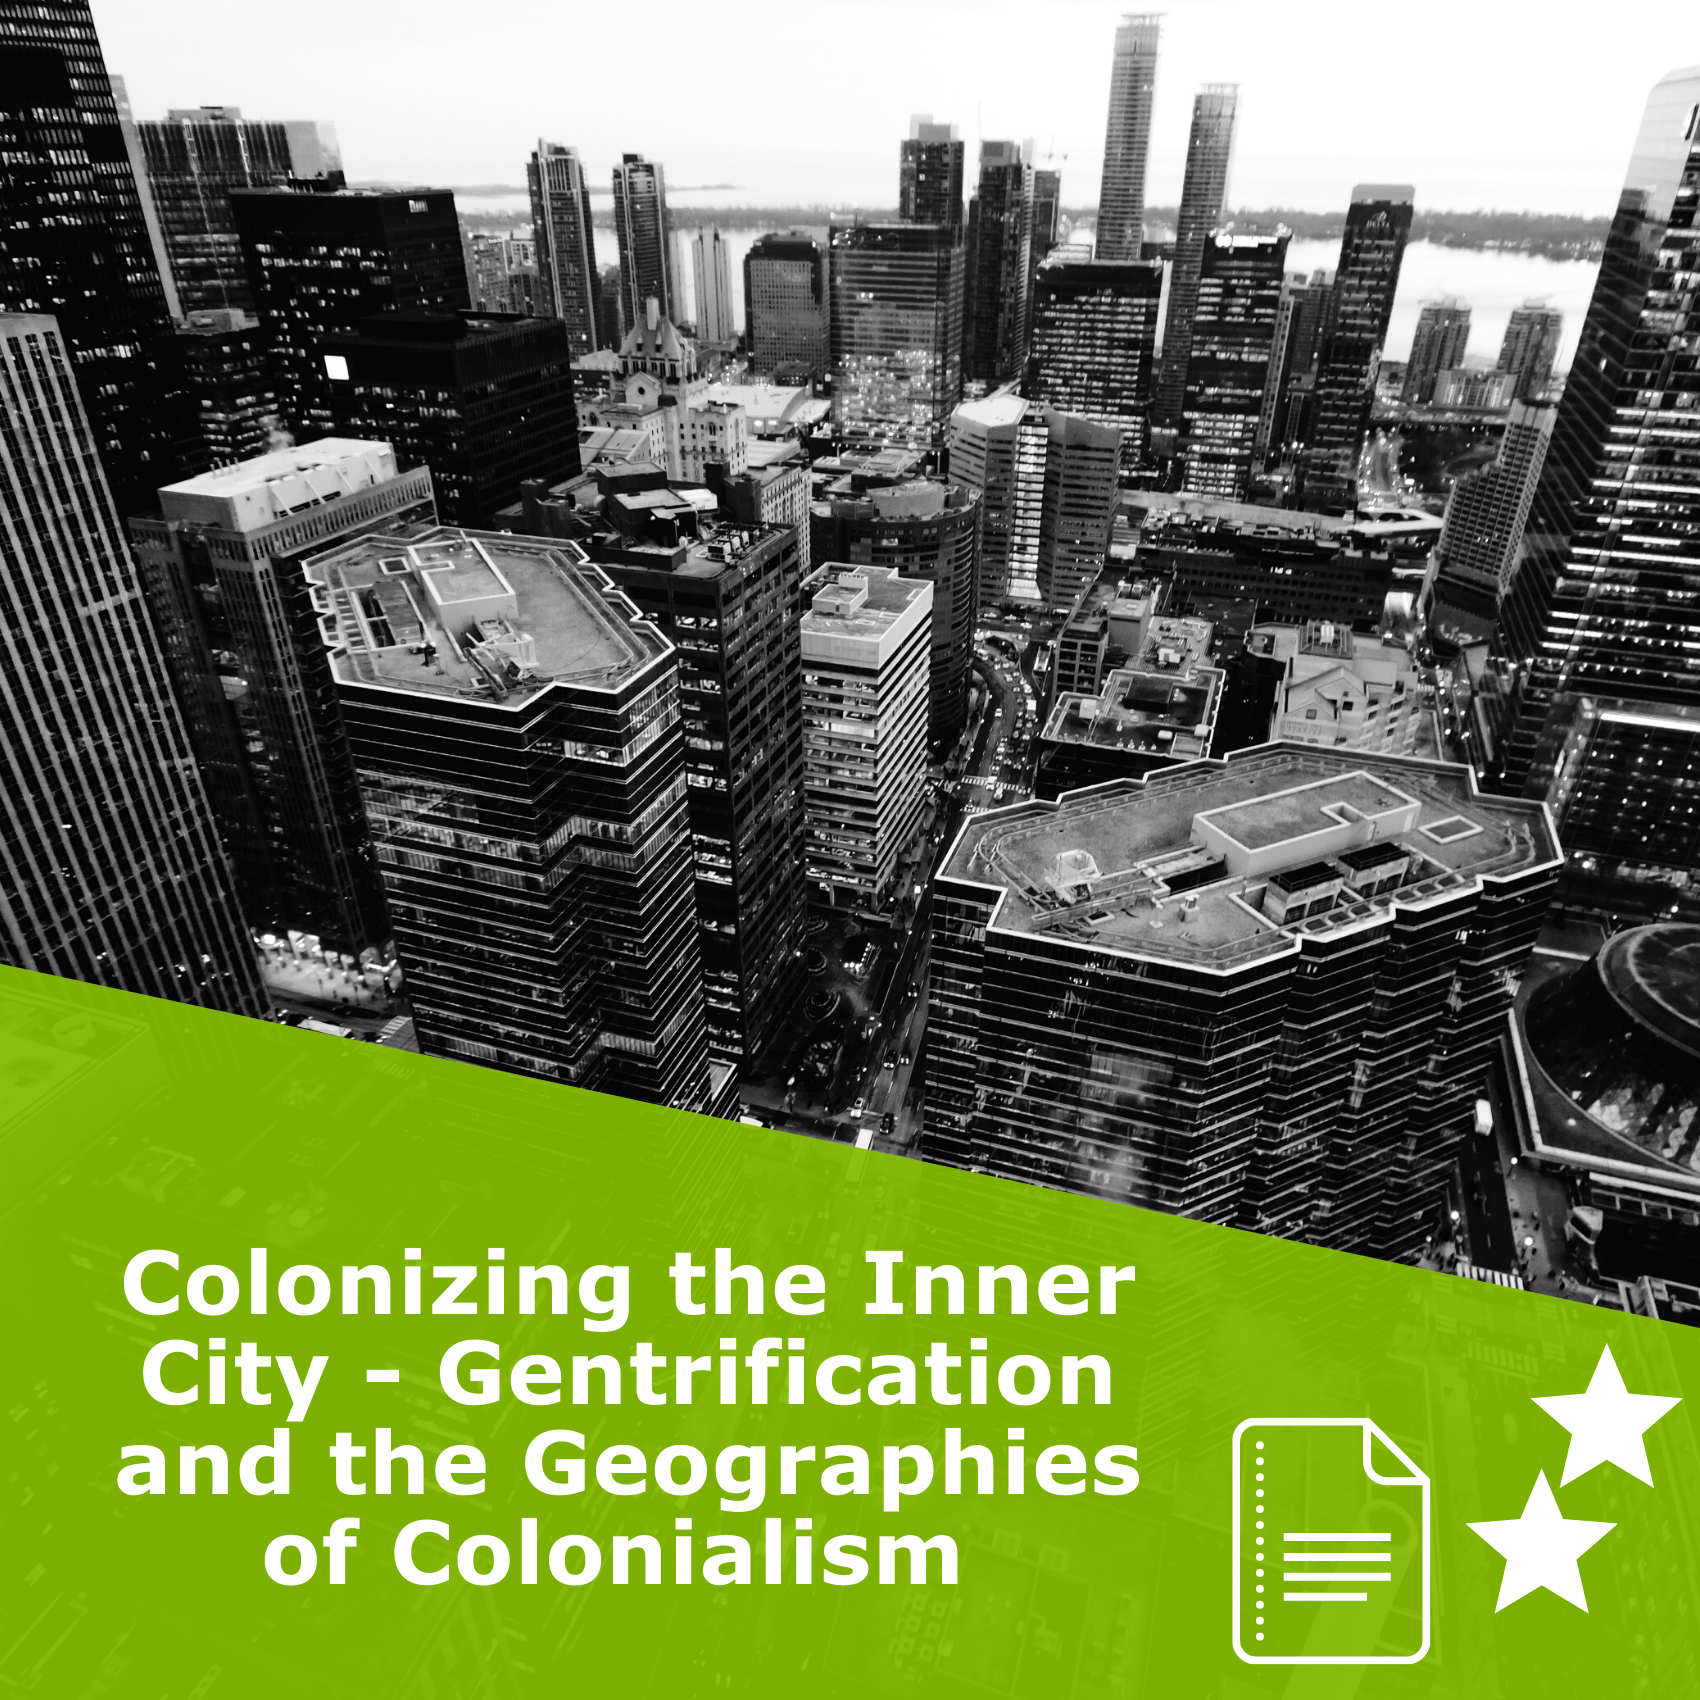 Picture of a city in black and white. Title 'Colonizing the Inner City - Gentrification and the Geographies of Colonialism'. It is an article rated 2 stars